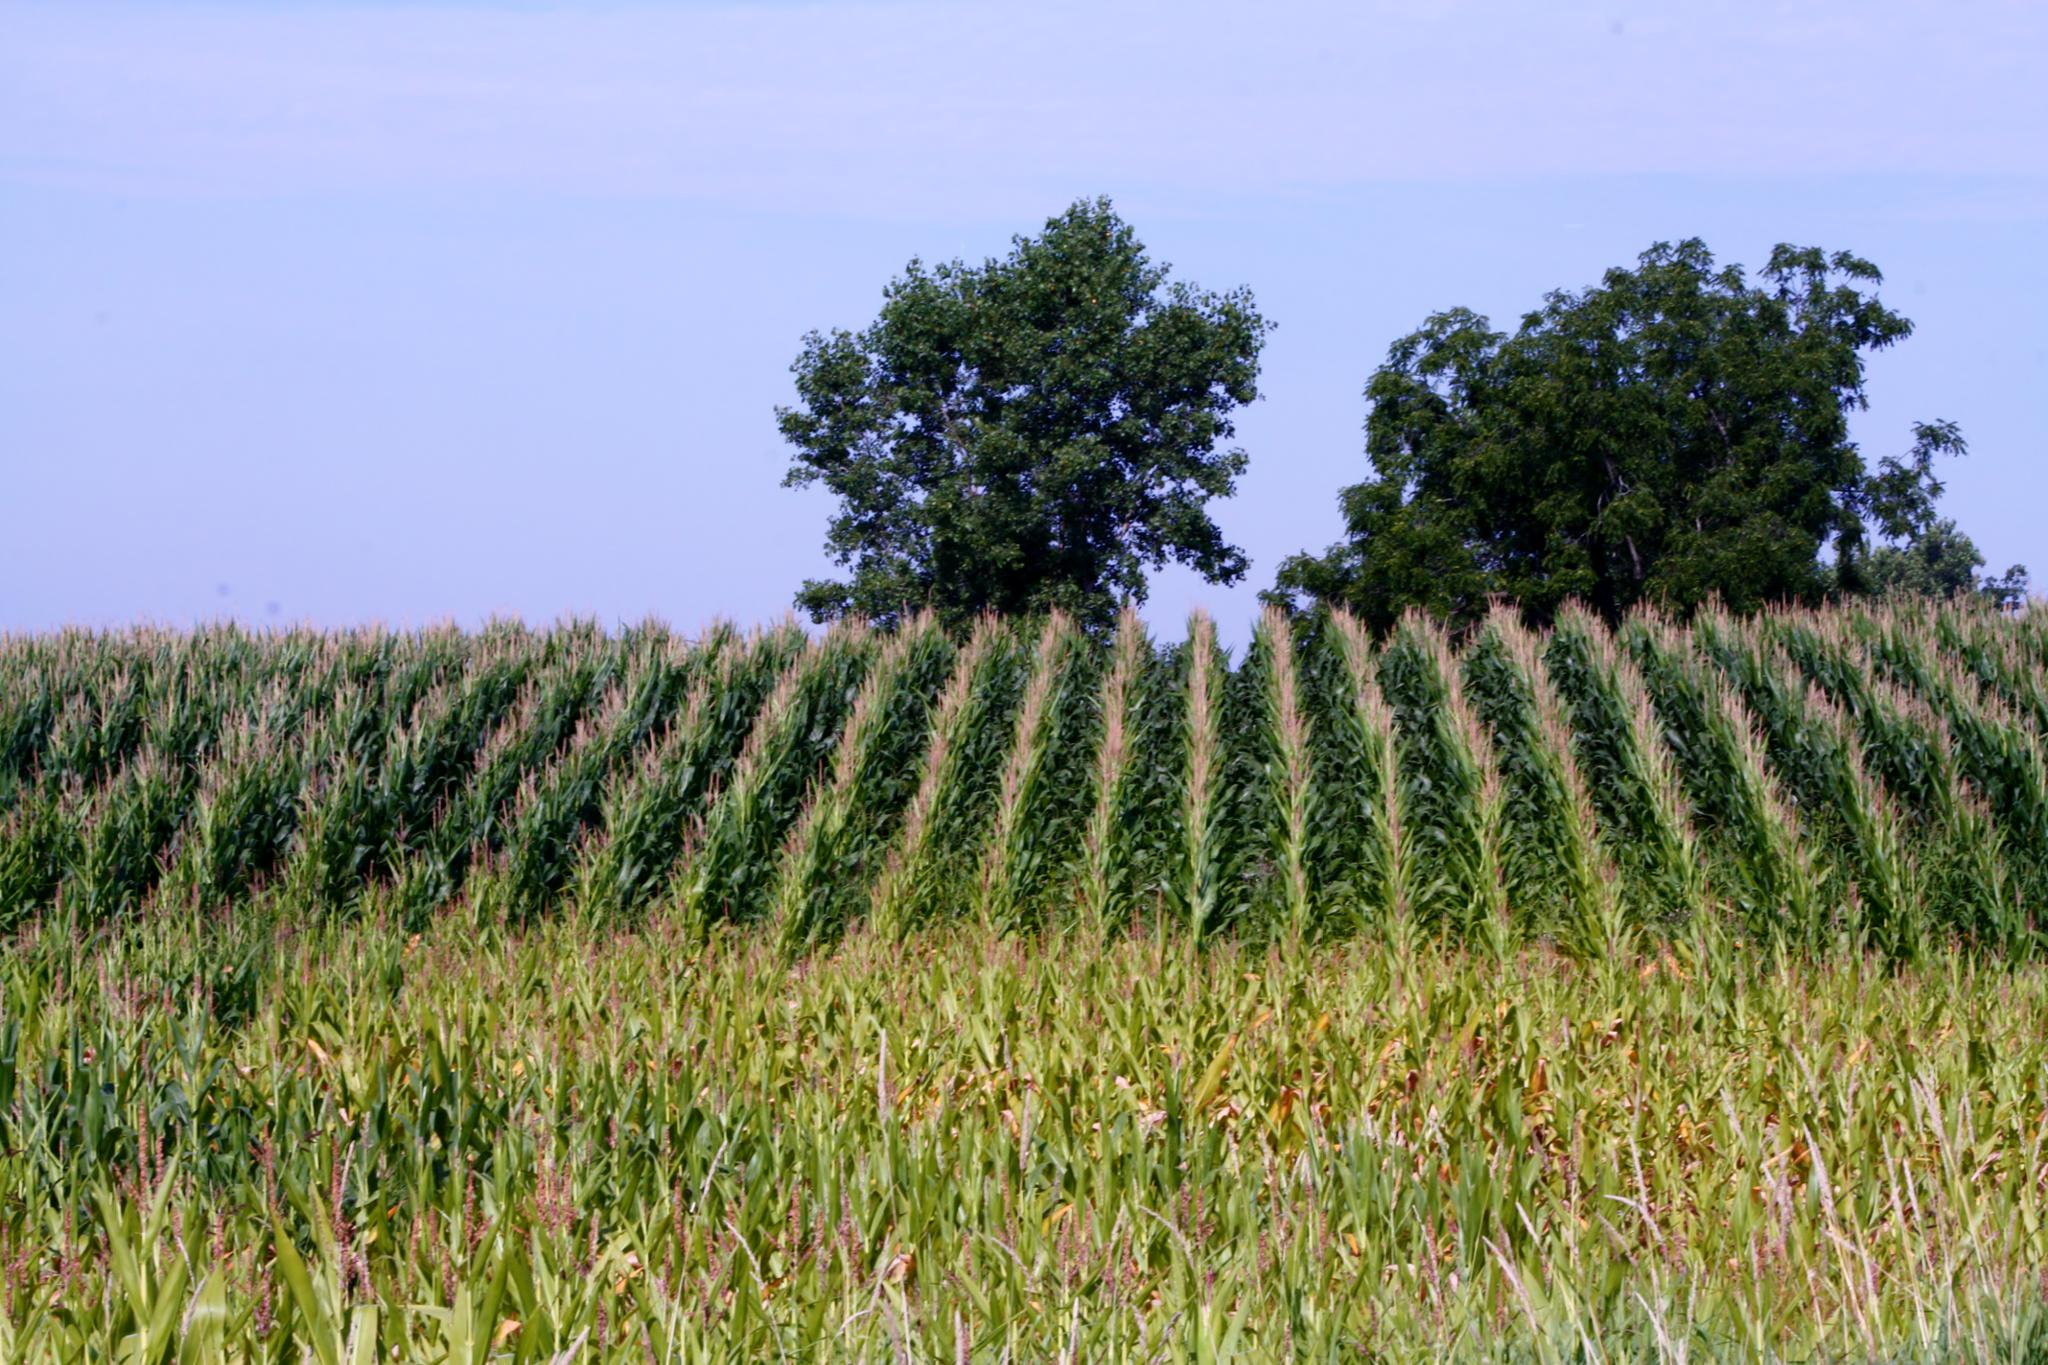 Rows of Tossled Corn by cindy.martin.7503